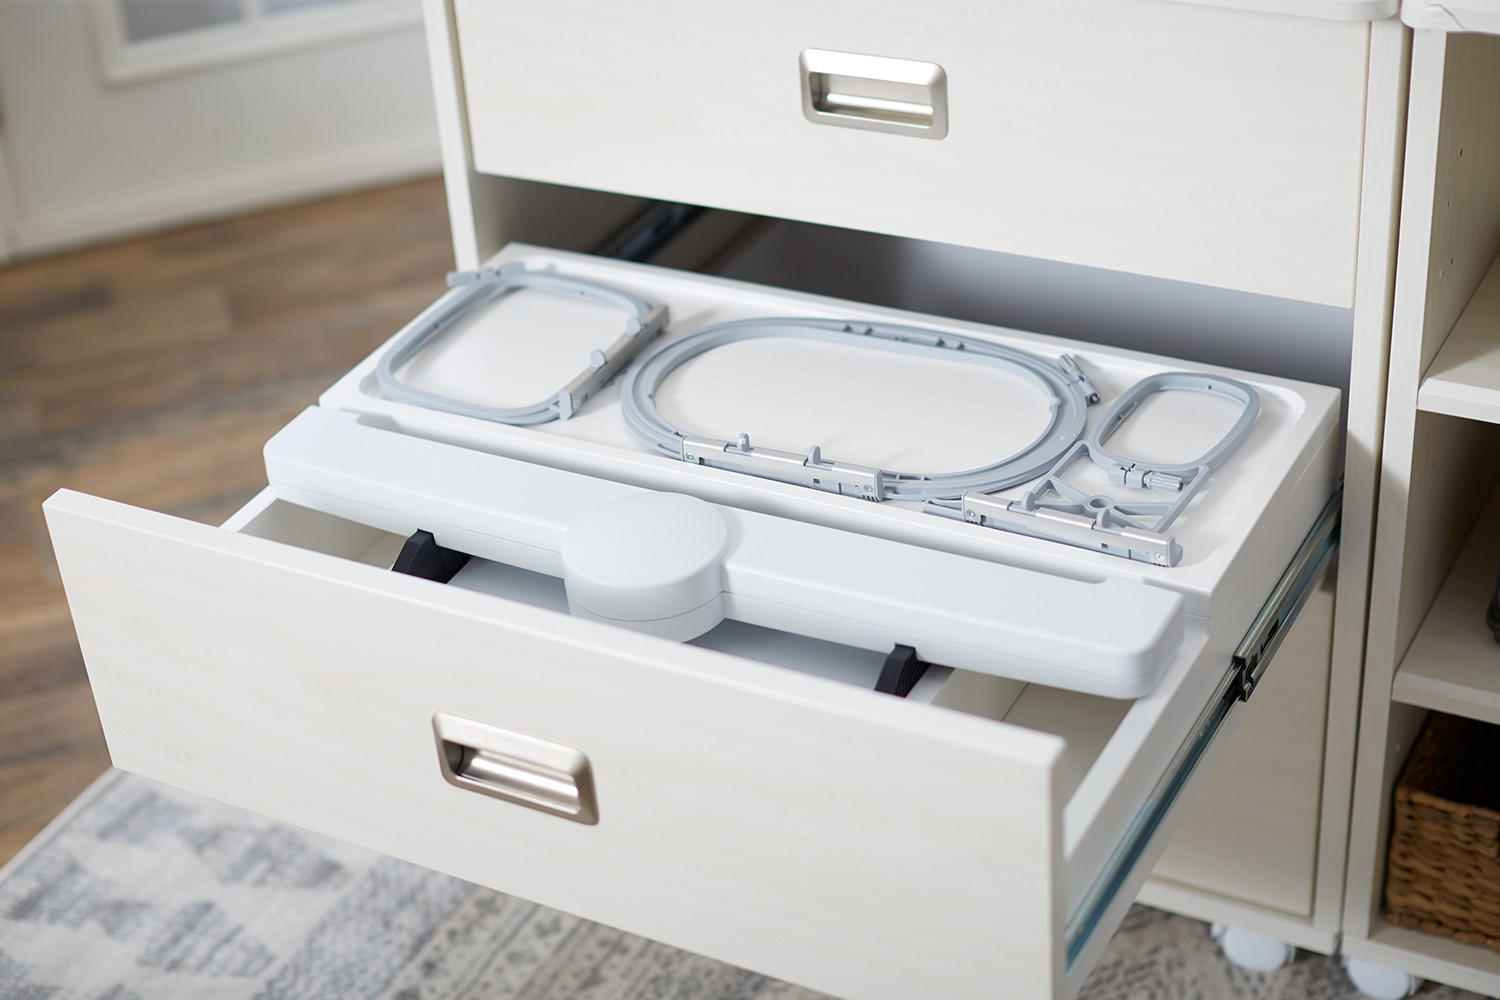 Koala Cabinets Bernina Caddy embroidery hoop and module storage